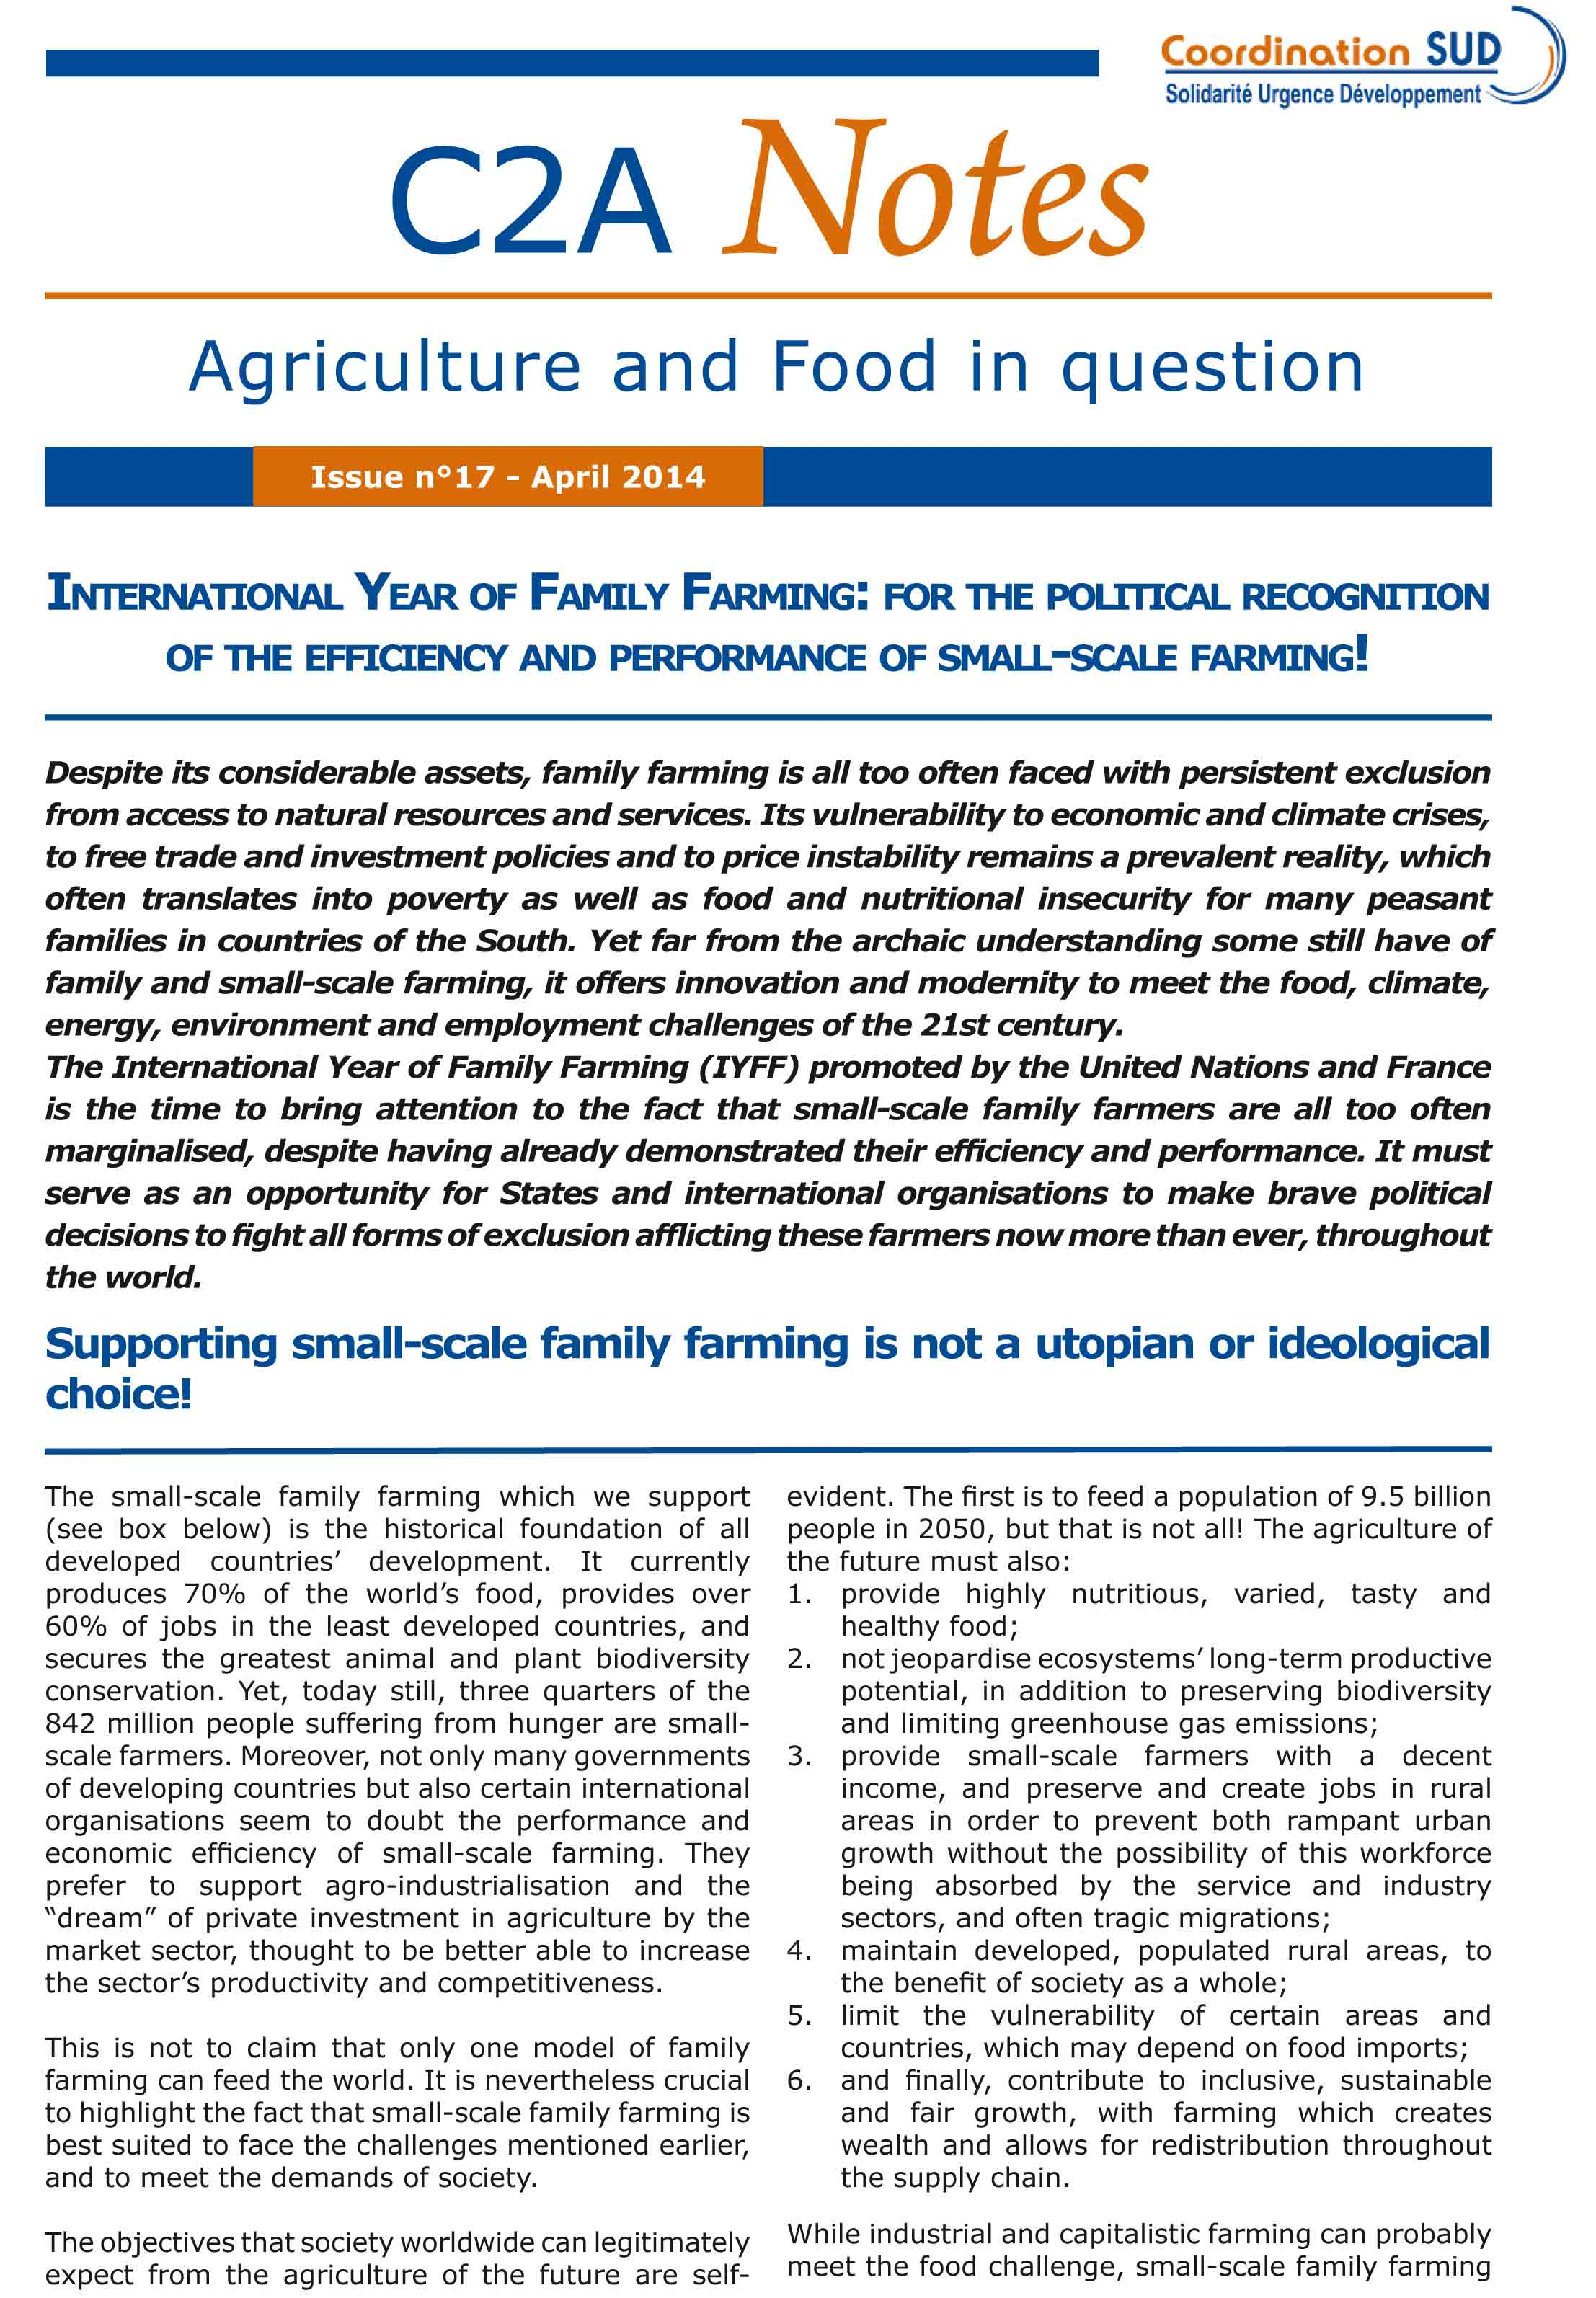 InternatIonal year of famIly farmIng: for the polItIcal recognItIon of the effIcIency and performance of small-scale farmIng! Image principale